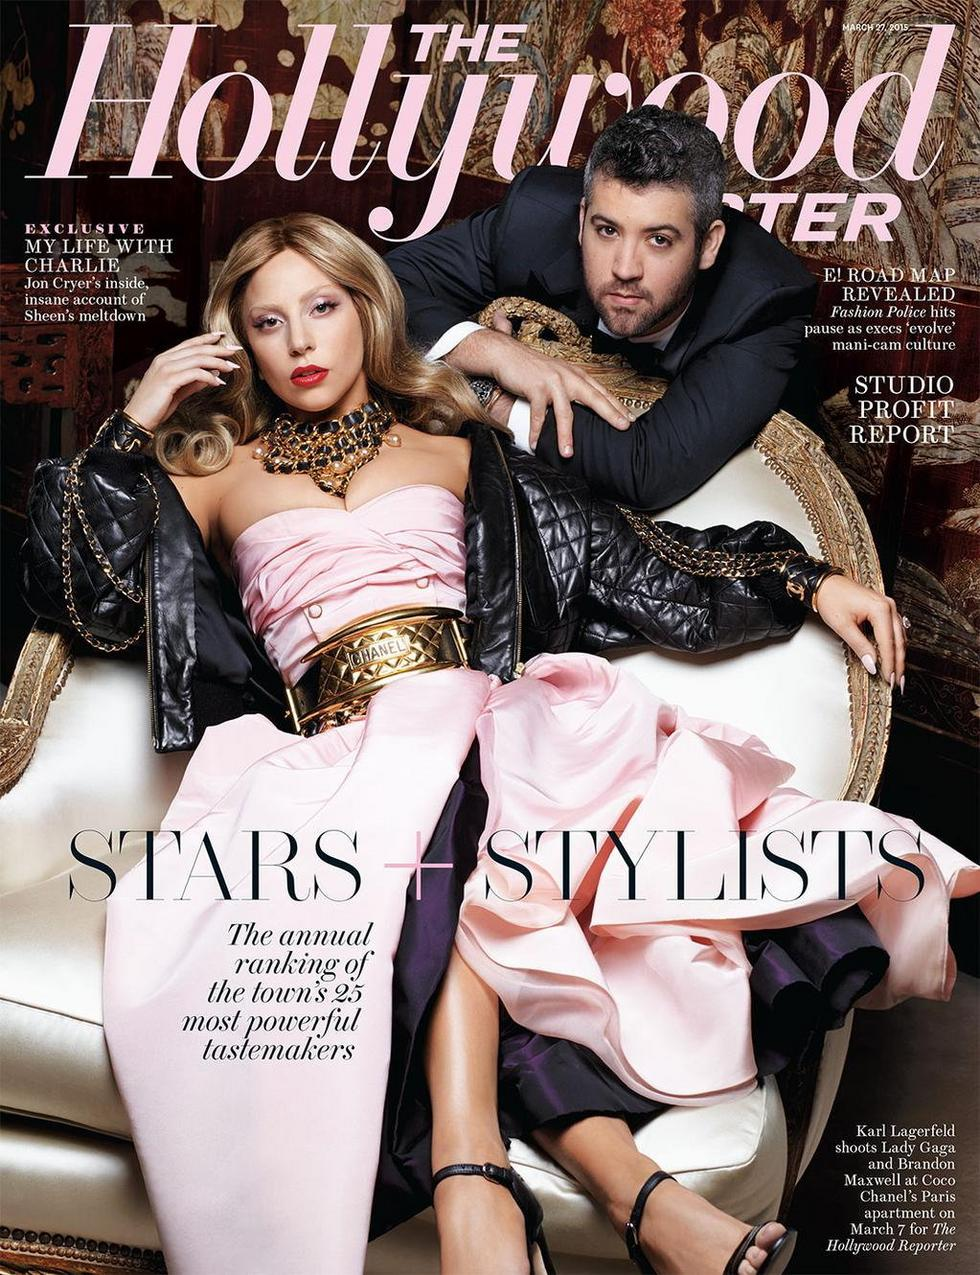 fot. Karl Lagerfeld / The Hollywood Reporter